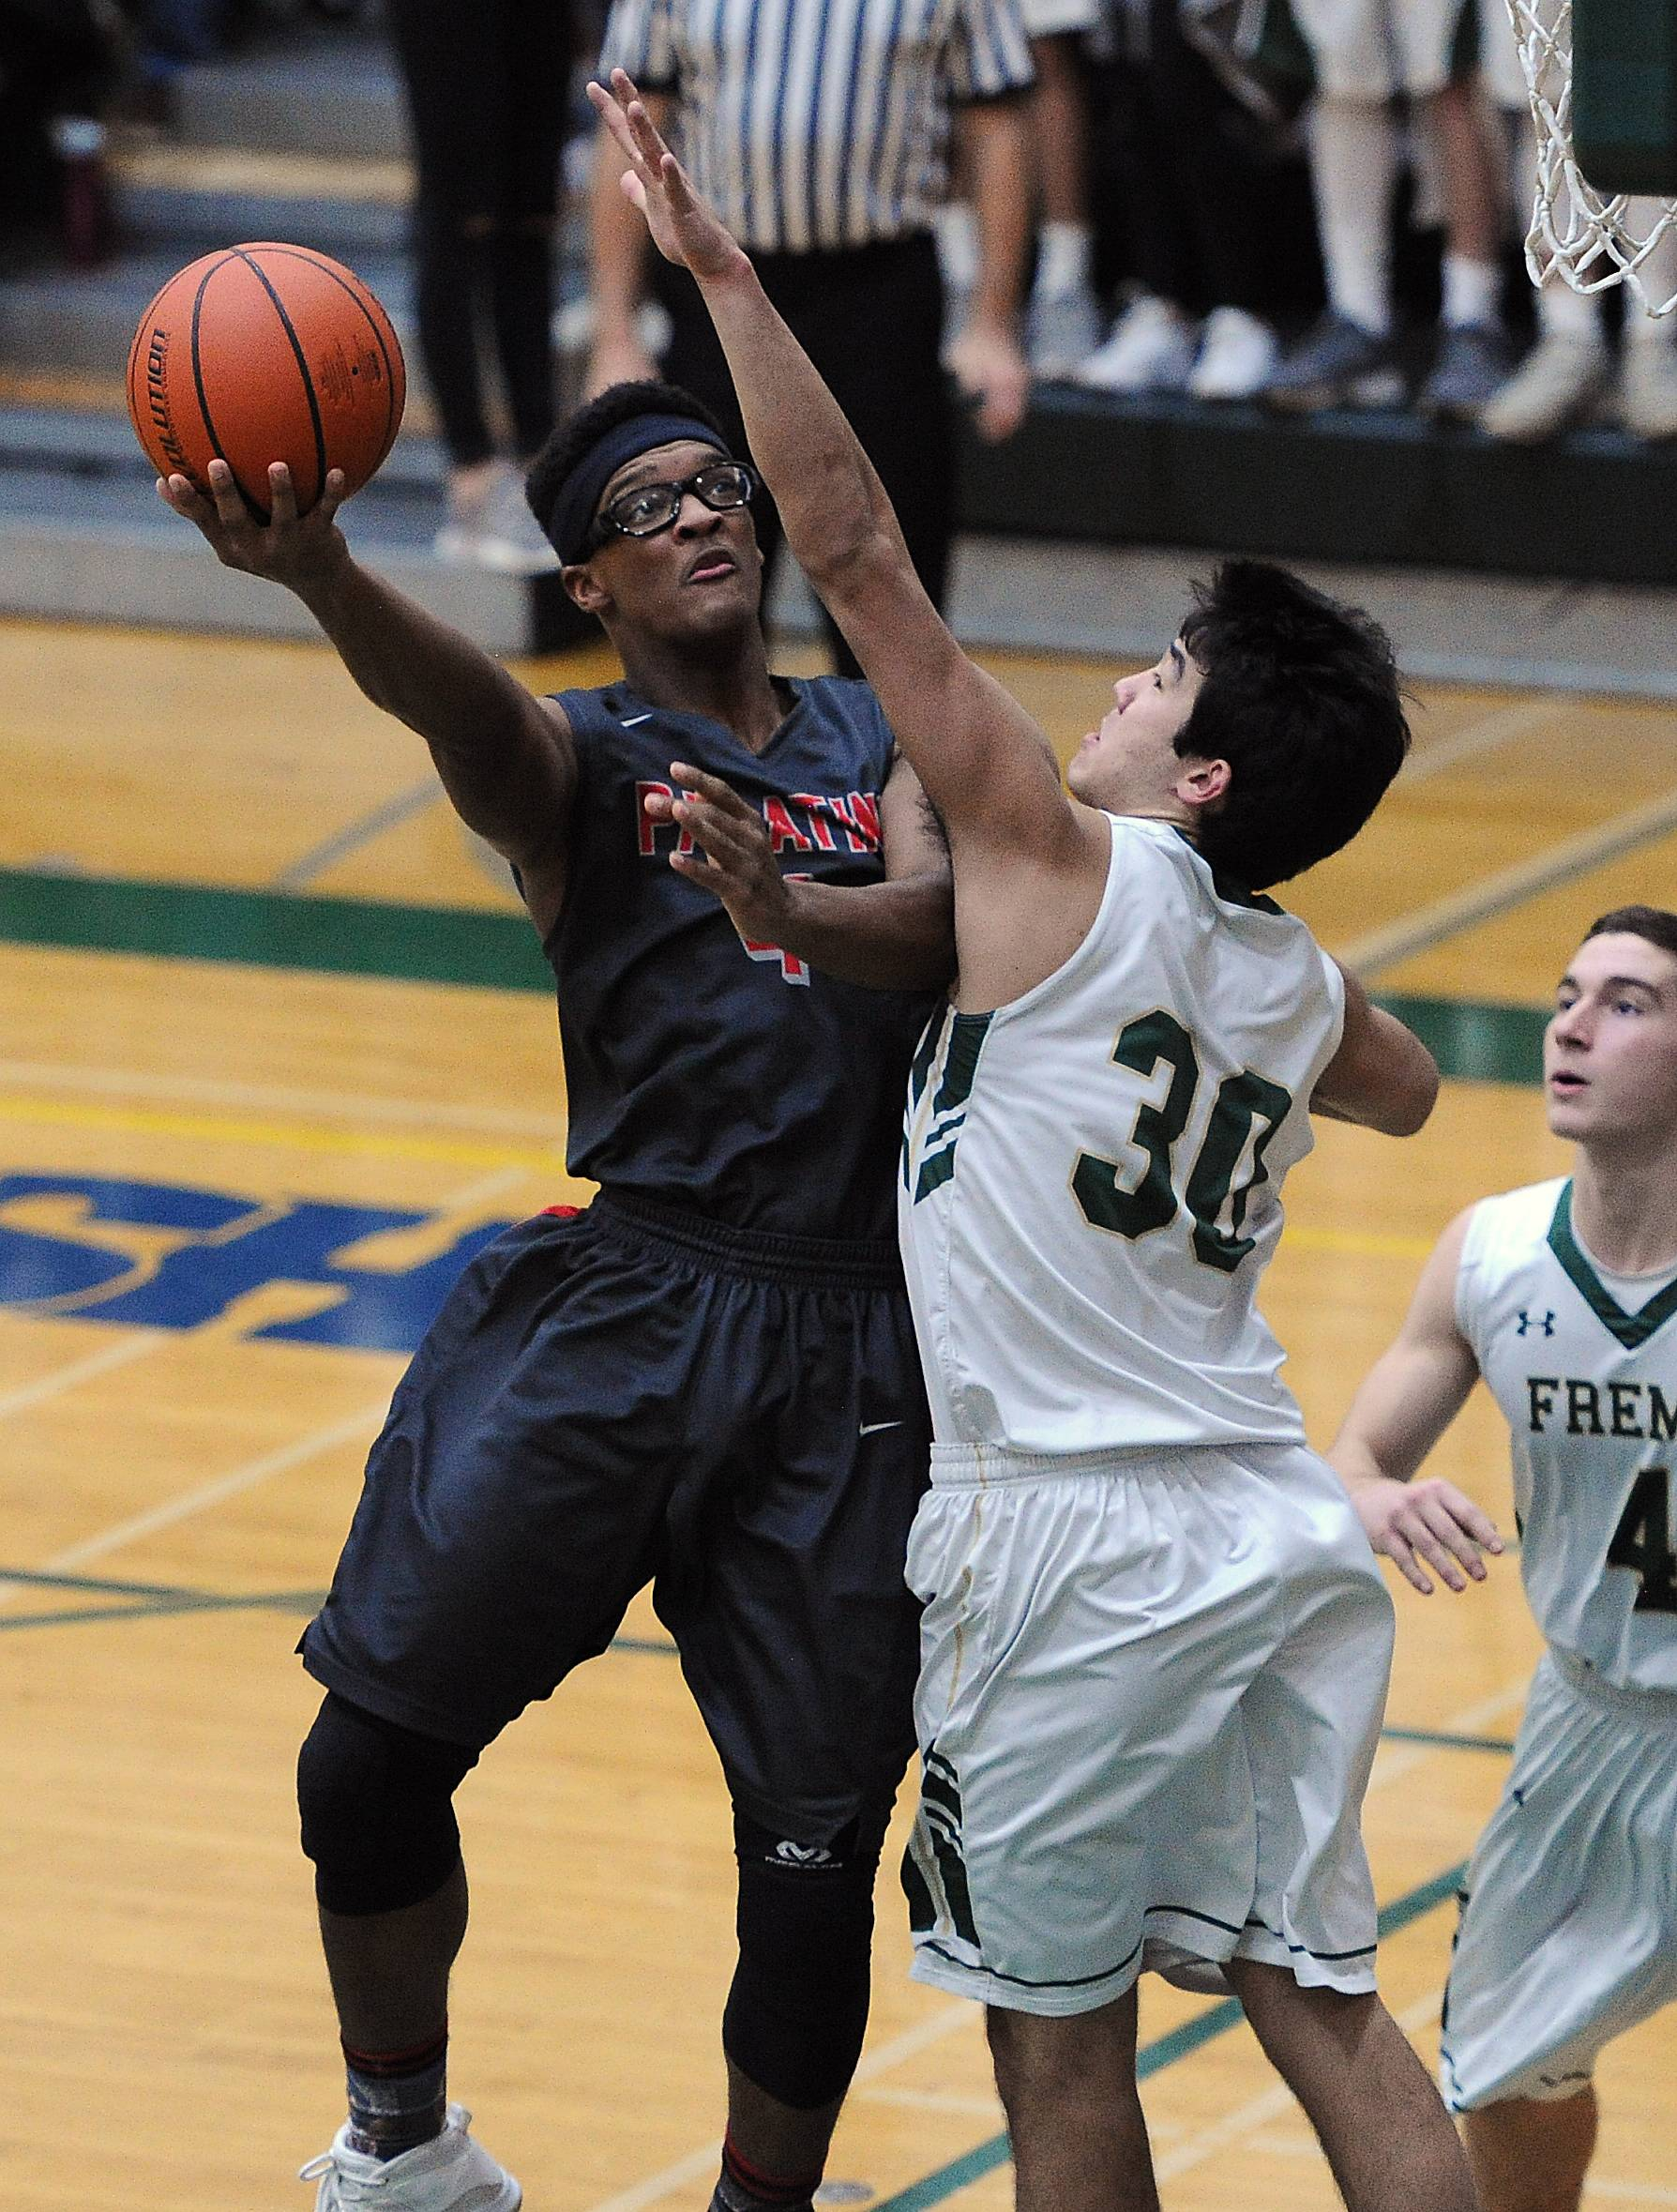 Palatine's Cortez Hogans goes for the score despite pressure from Fremd's Ryan Martin in the first Friday at Fremd.